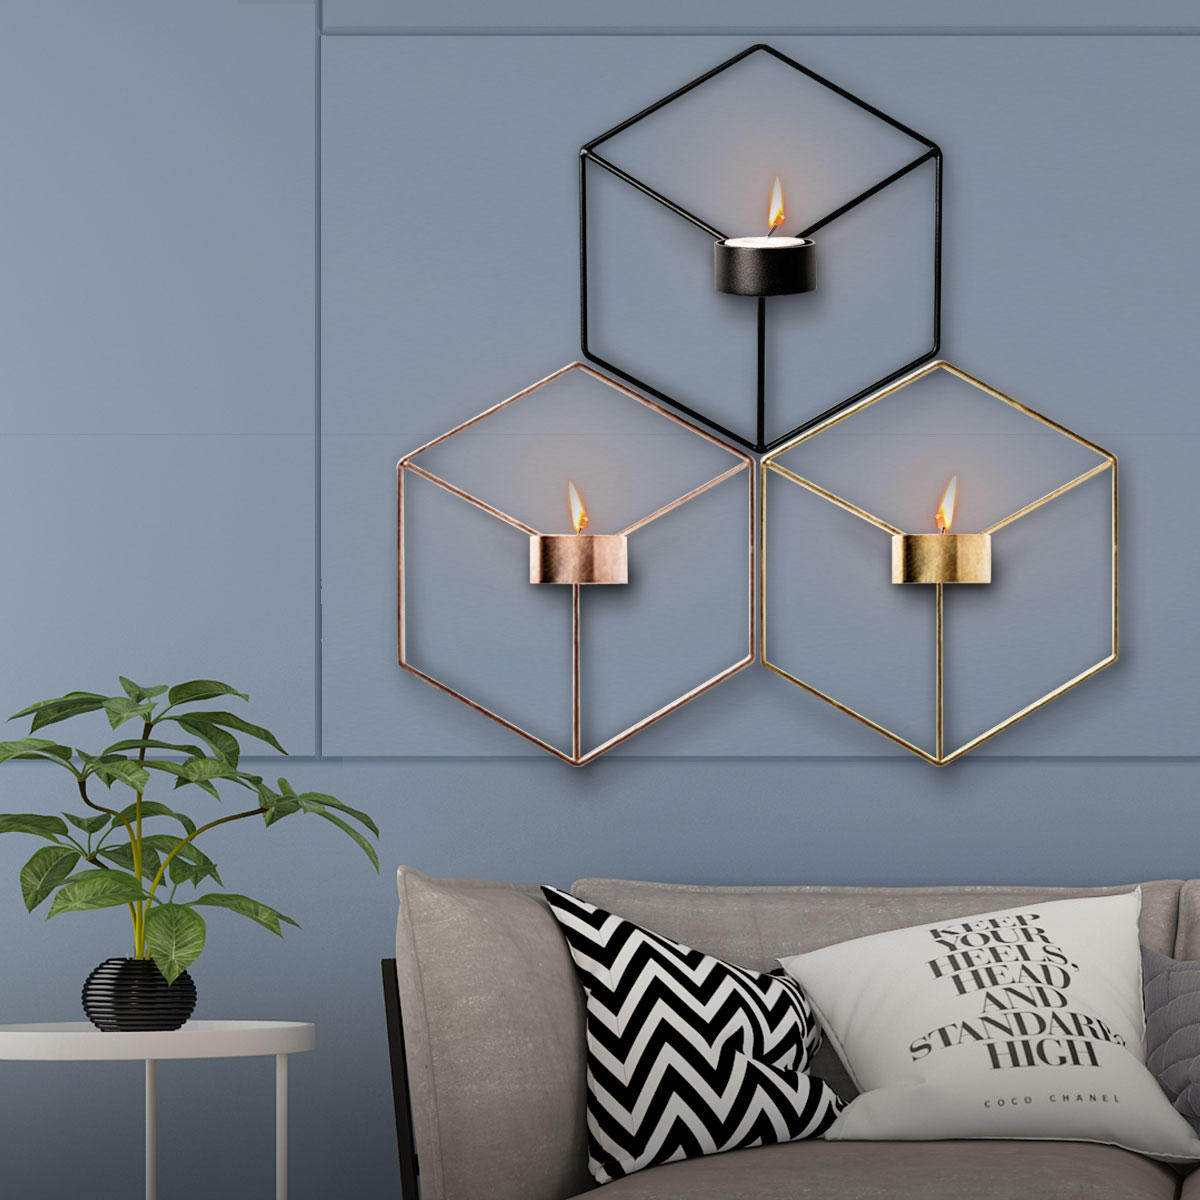 3d Geometric Nordic Style Candle Holder Iron Candlestick Handmade Wall Art Room Us 9 81